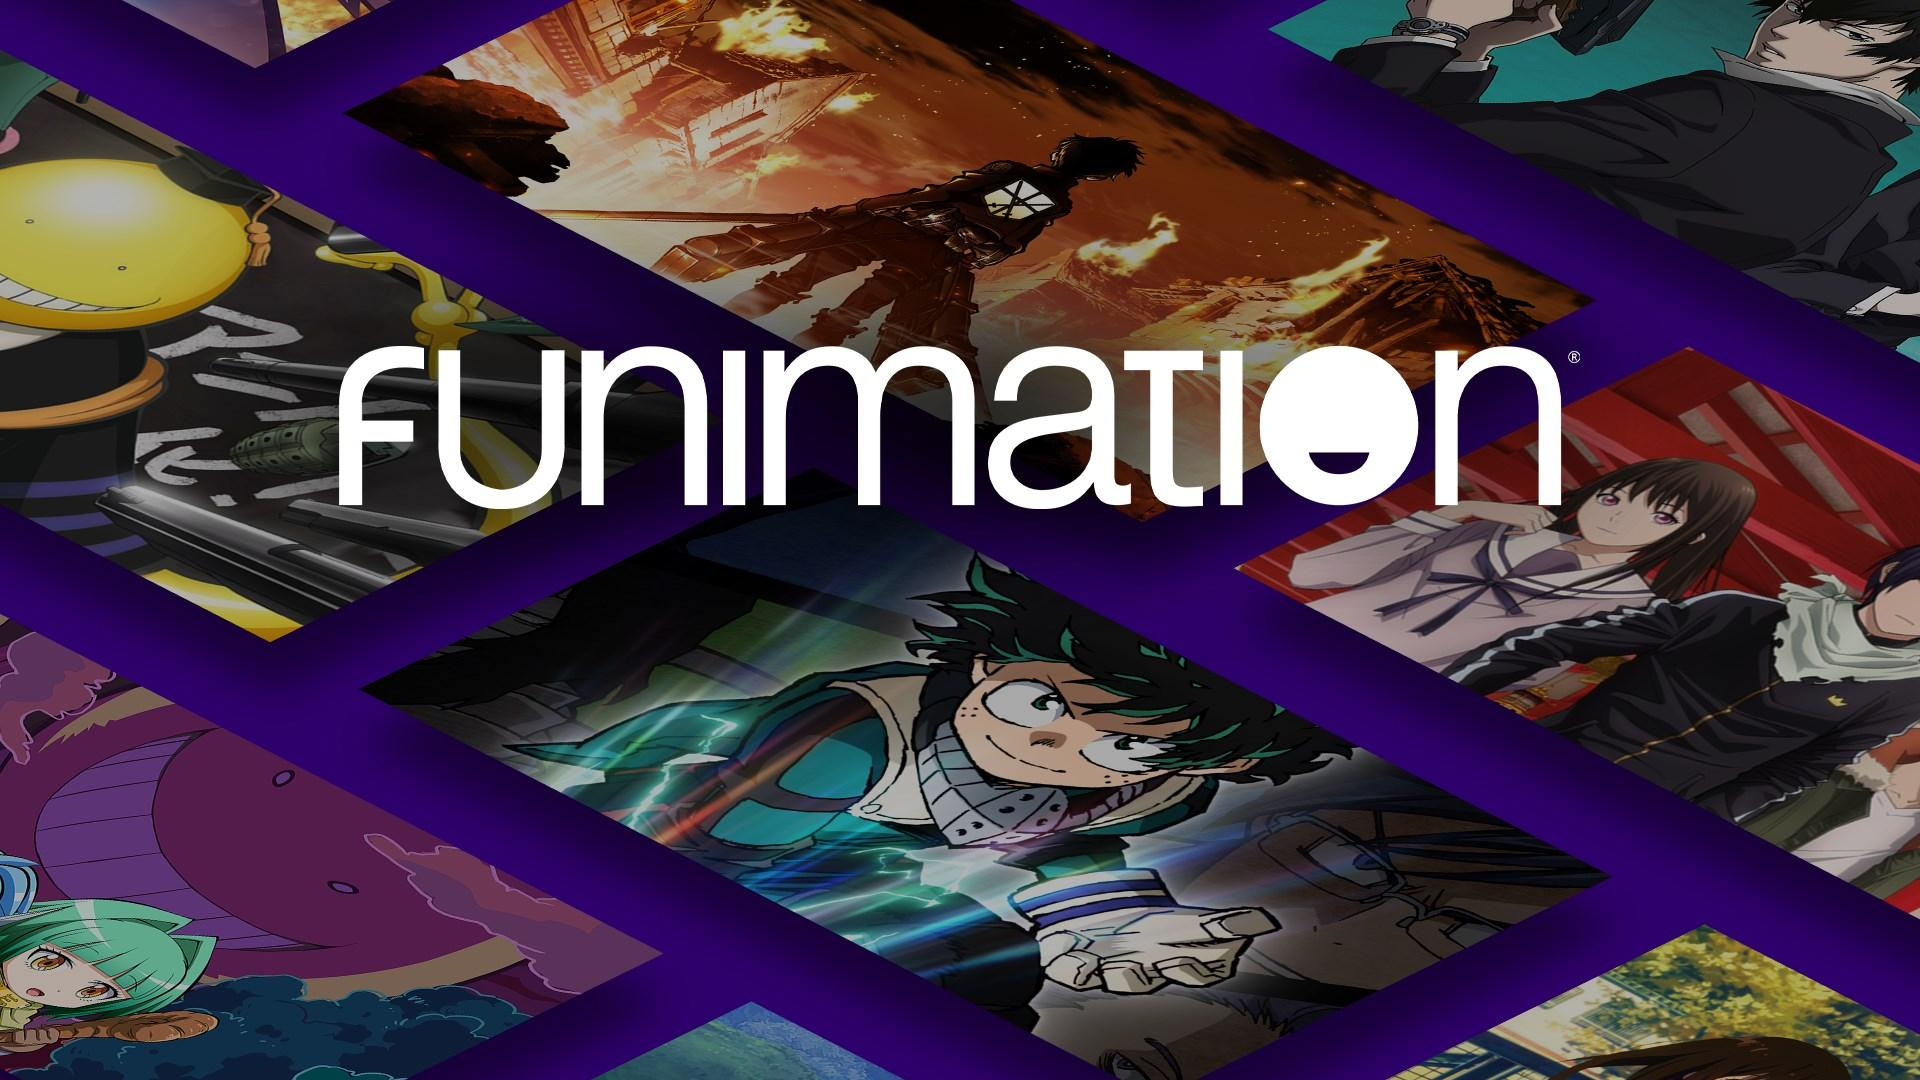 Fans-worried-as-funimation-schedules-site-maintenance